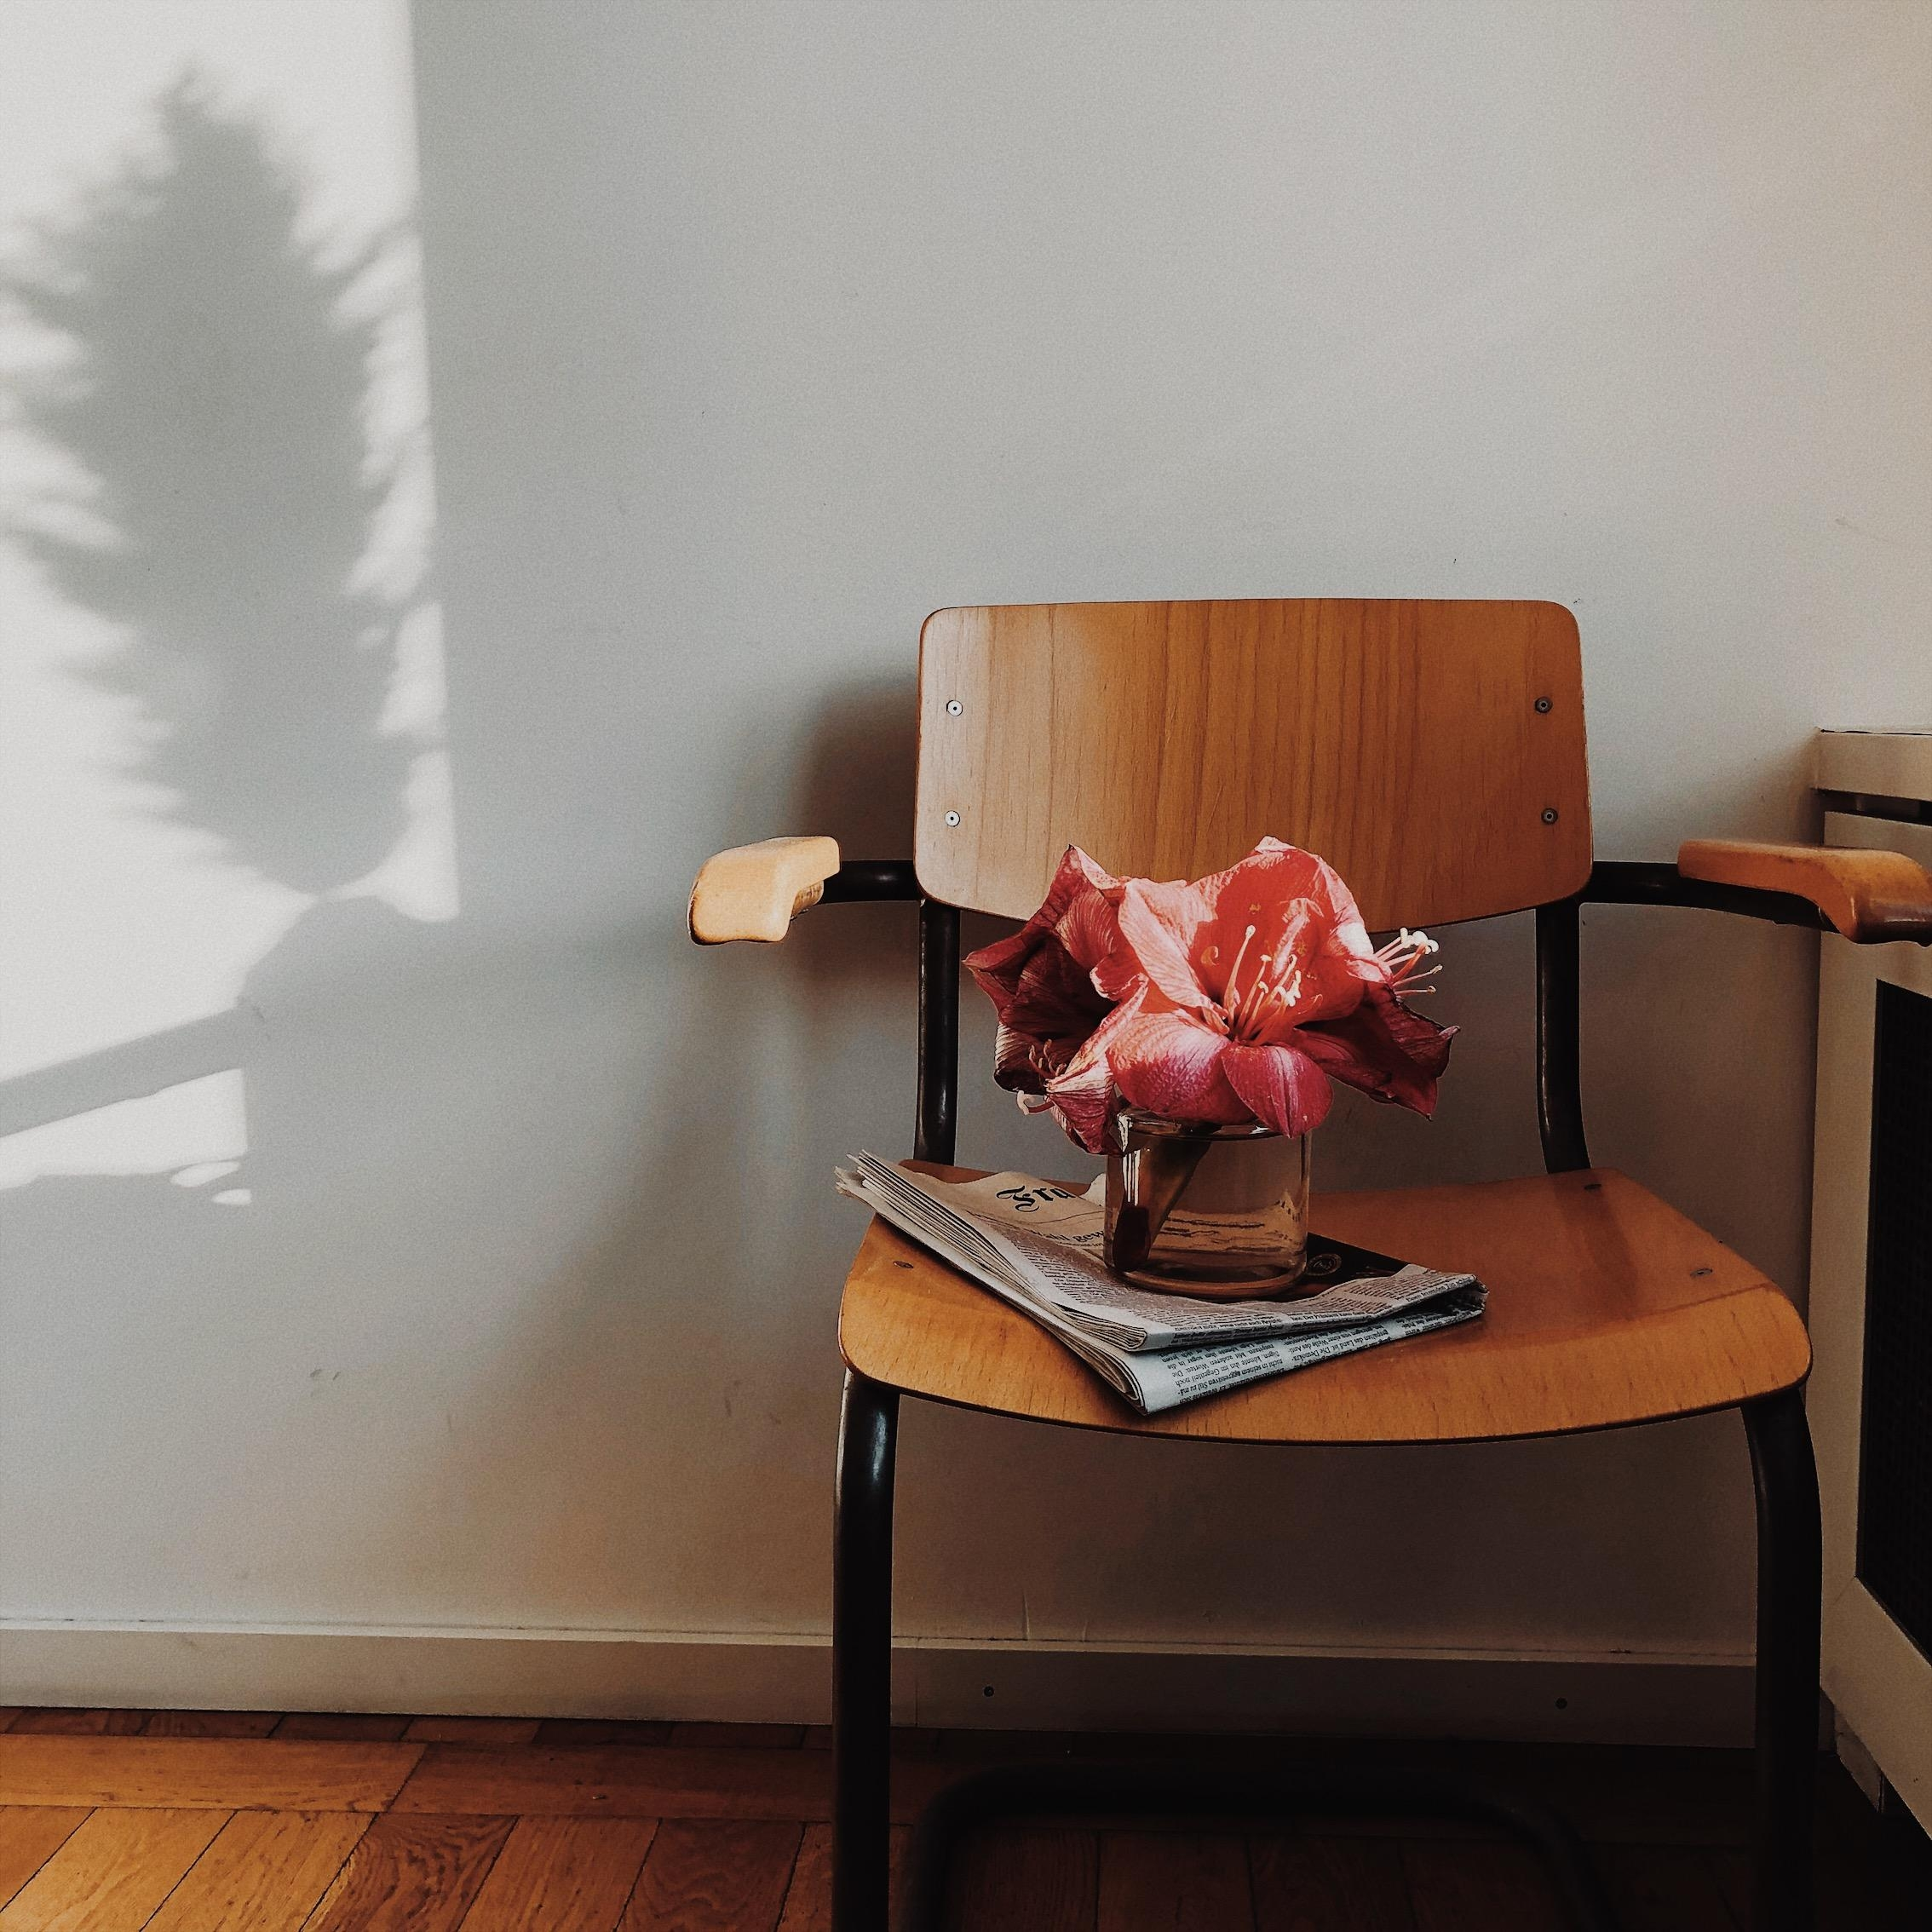 Shadow on the wall #chair #vintage #blumen #interiorinspo #couchstyle #nordicstyle #light #interior